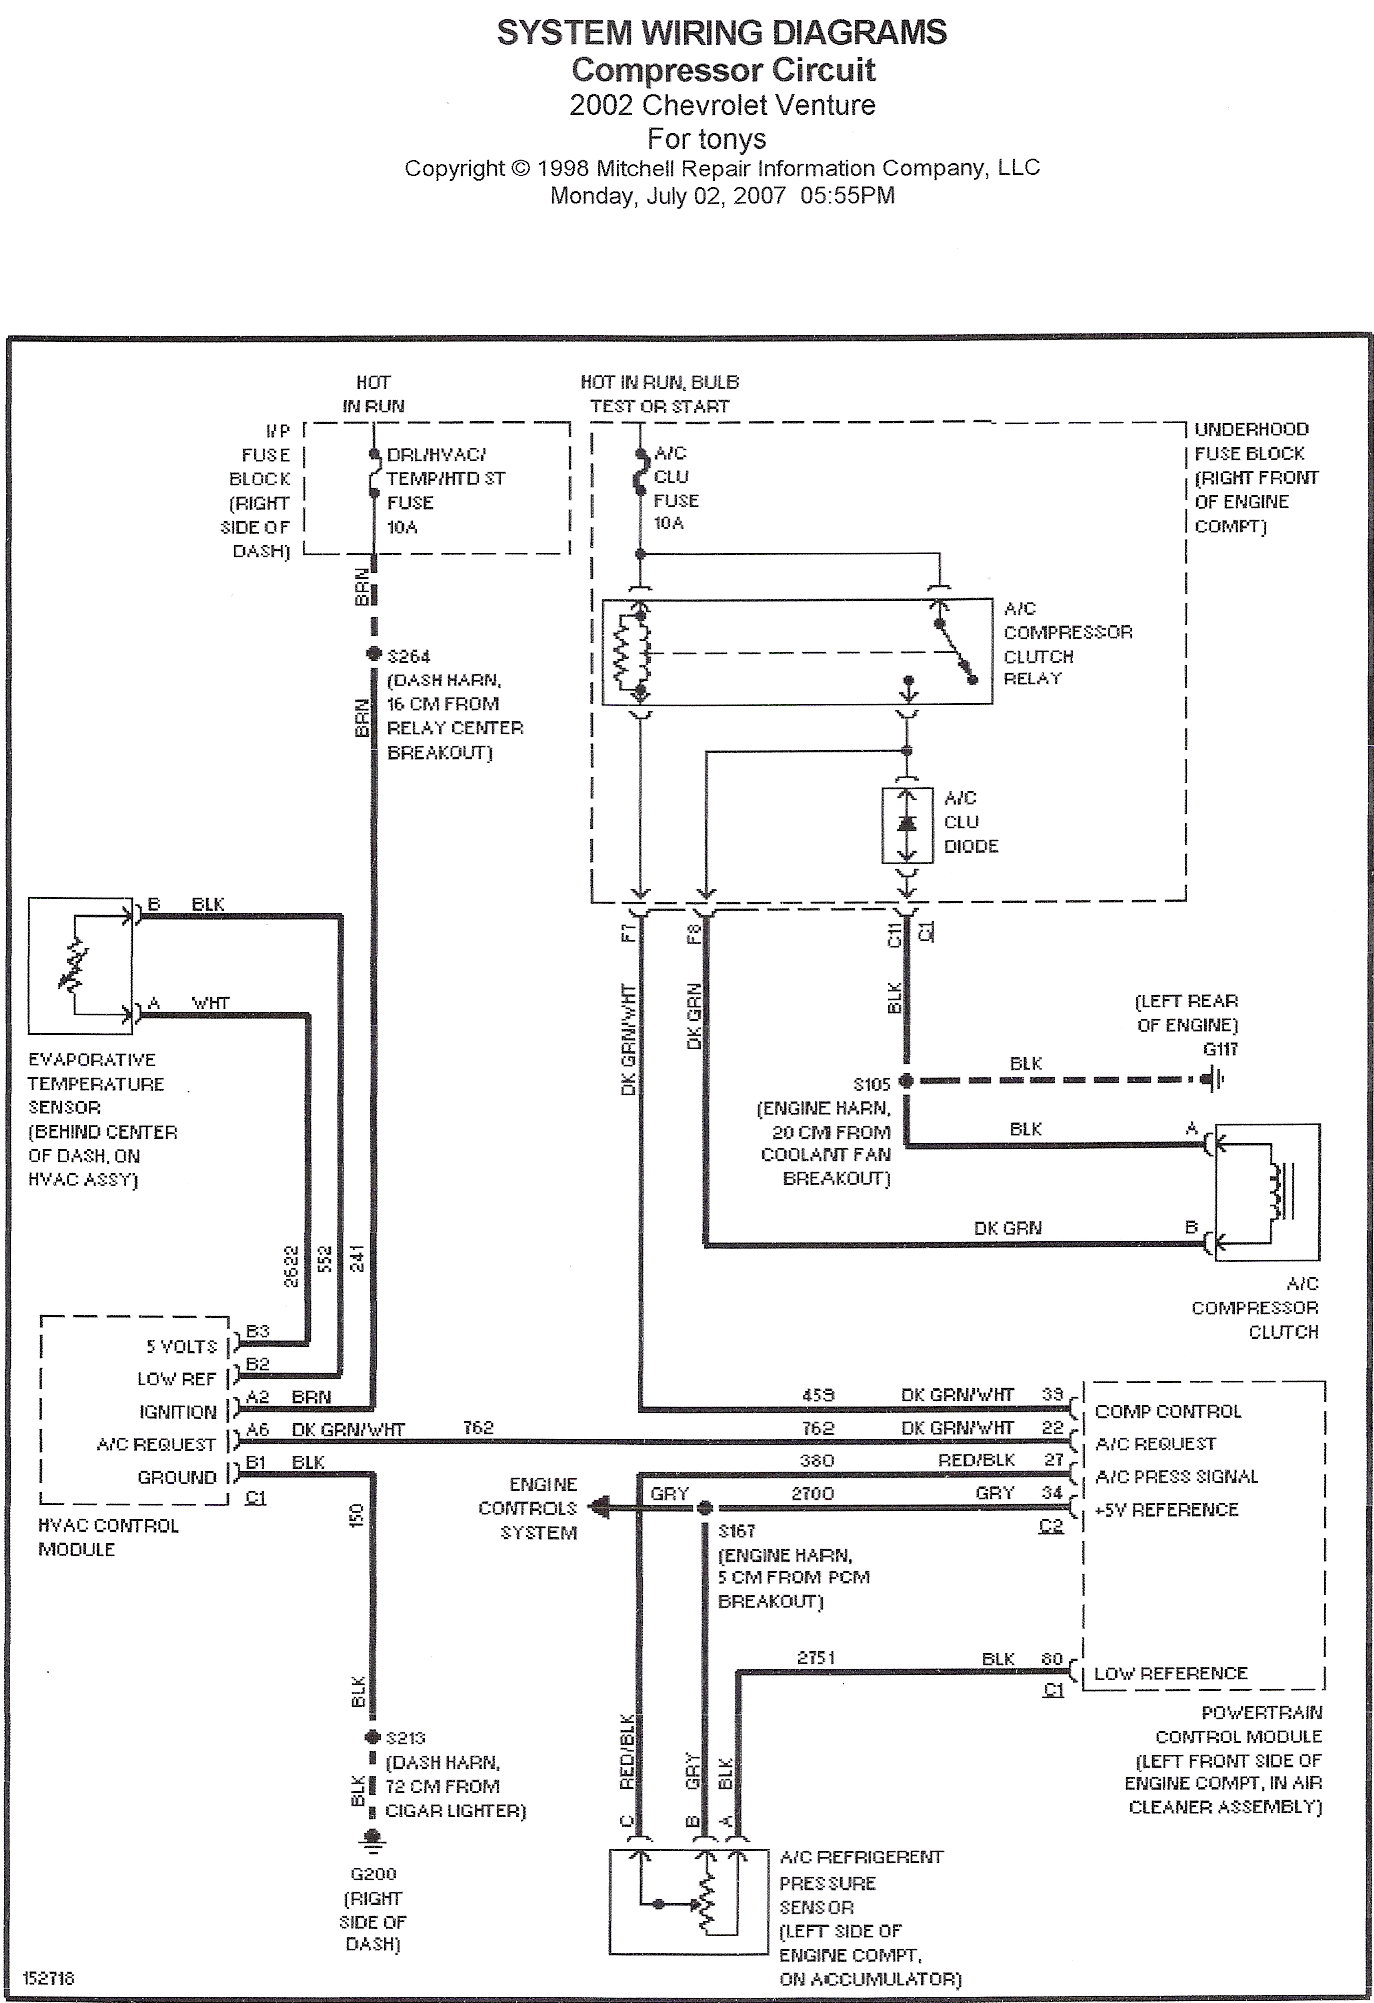 Chevy Venture Wiring Diagram Collection